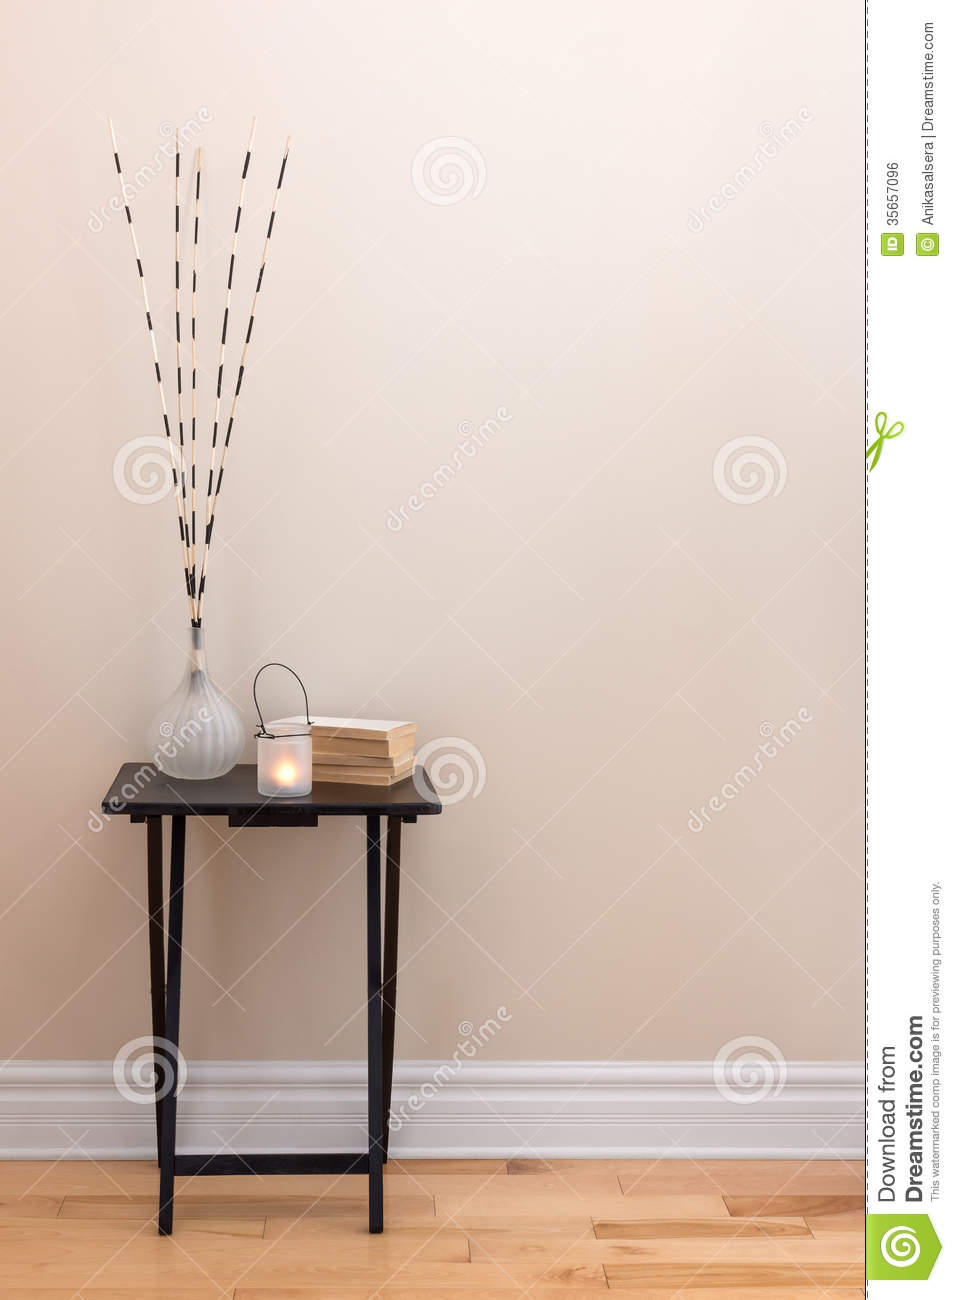 Home Decor Little Table With Decorations Stock Photo Image Of